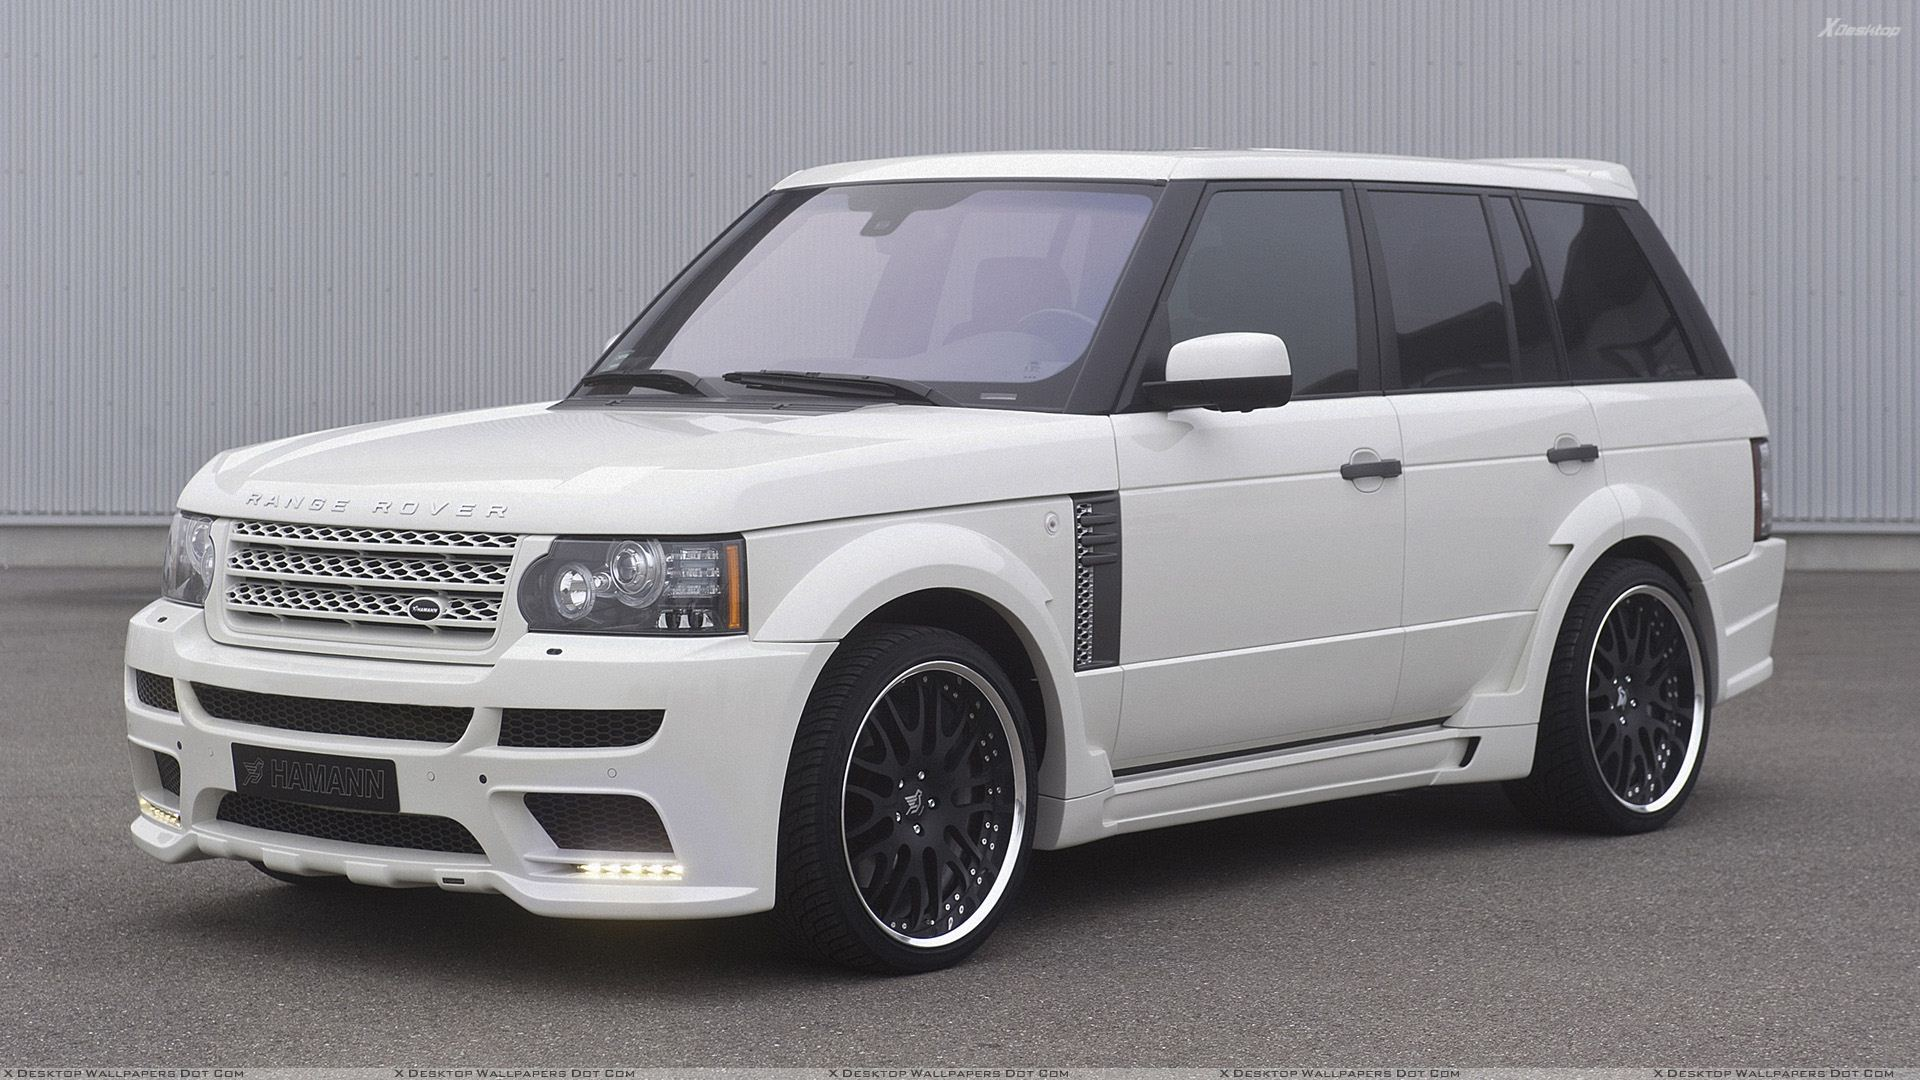 side pose of hamann range rover 5.0i v8 supercharged in white wallpaper